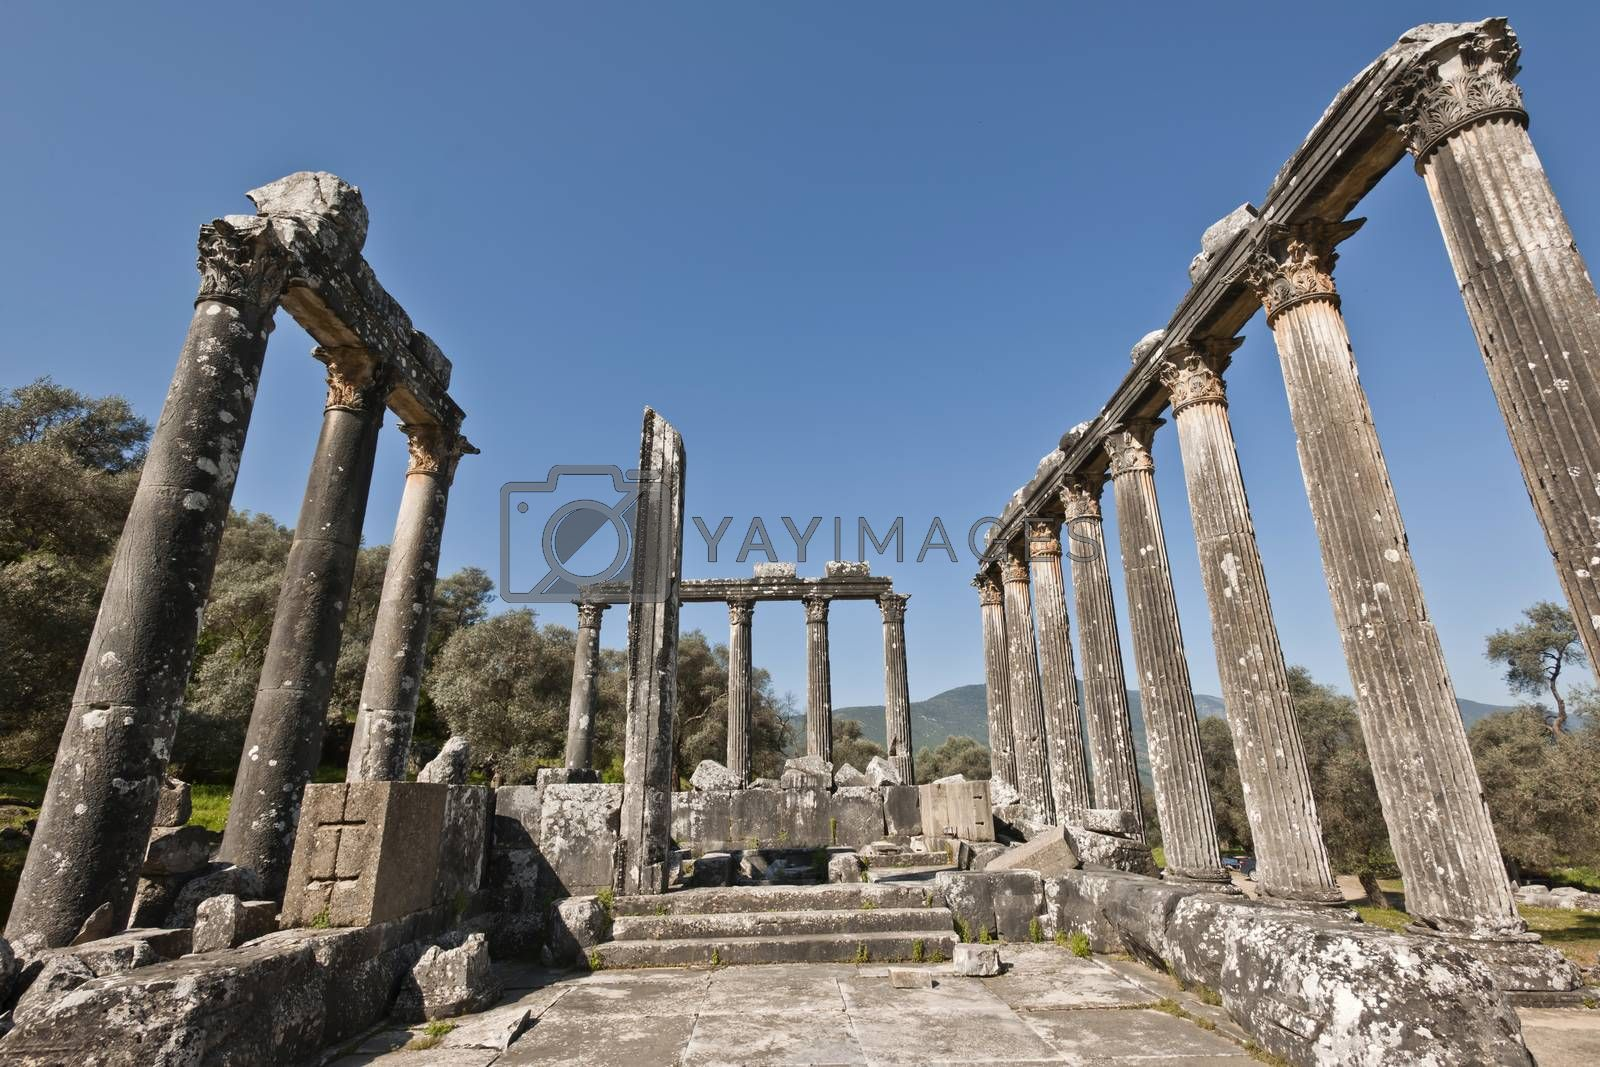 The Temple of Zeus at Euromos is to me the perfect ruined Greek temple.  Set in a forest of olive trees just east of the D525 highway between Selcuk (Ephesus) and Bodrum (25 km/16 miles SE of Lake Bafa, 13 km/8 miles NW of Milas), just south of the village of Selimiye (map), the Corinthian temple almost looks like a Hollywood set, except it's for real.  A shrine may have existed here from the 6th century BCE.  Believed to date from the time of Emperor Hadrian (117-138 CE), the Temple of Zeus Lepsynus and its precinct were excavated by Turkish archeologists starting in 1969. Look carefully and you'll see that some of the columns are unfluted, meaning perhaps that the temple was never finished.  Located about a mile south of the village of Selimiye, the temple area has no services, although there may be a villager selling cold drinks.  Stop for a half-hour's look if you're driving south from ?zmir or Ephesus headed for Milas, Bodrum or Marmaris.  This is actually a much larger archeological site than just the temple. The hillside to the east is littered with ruins, and if you spend an hour hiking around you can find a theater, an agora and massive defensive walls.